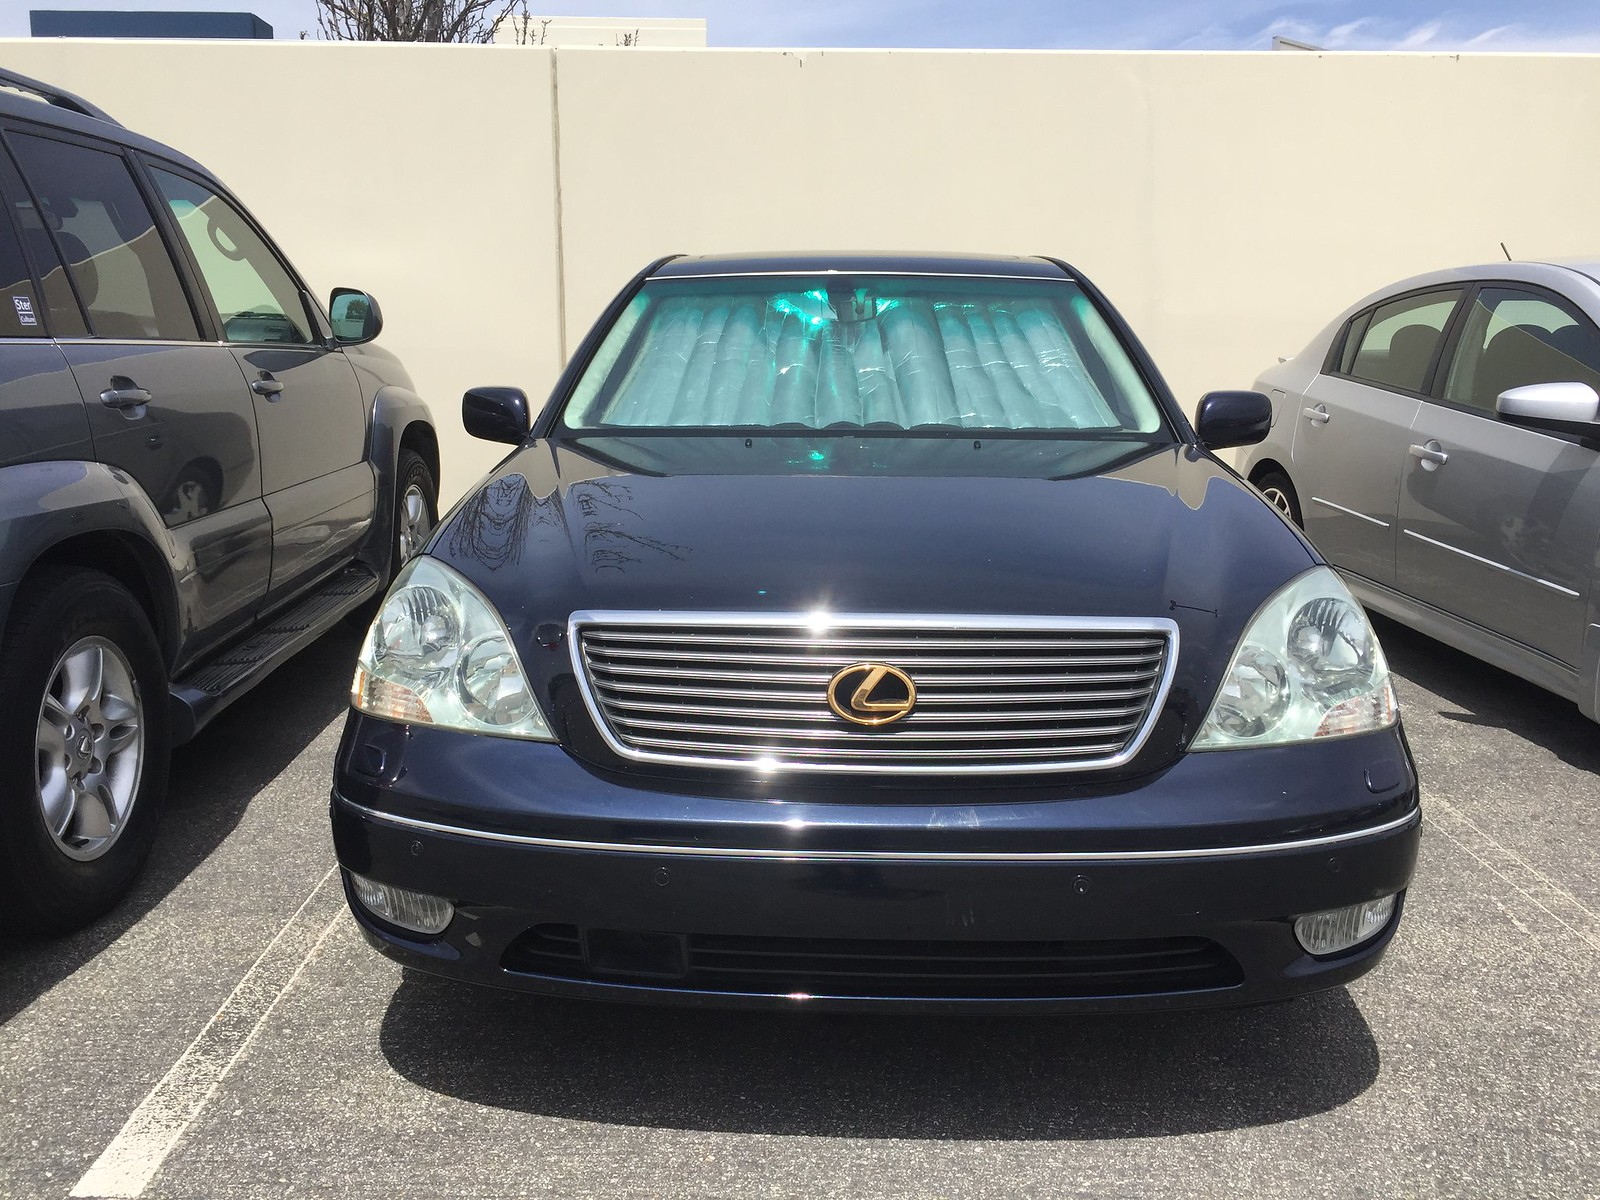 CA 2002 Lexus LS430 with 110k Miles - 2 Owner/Clean Title